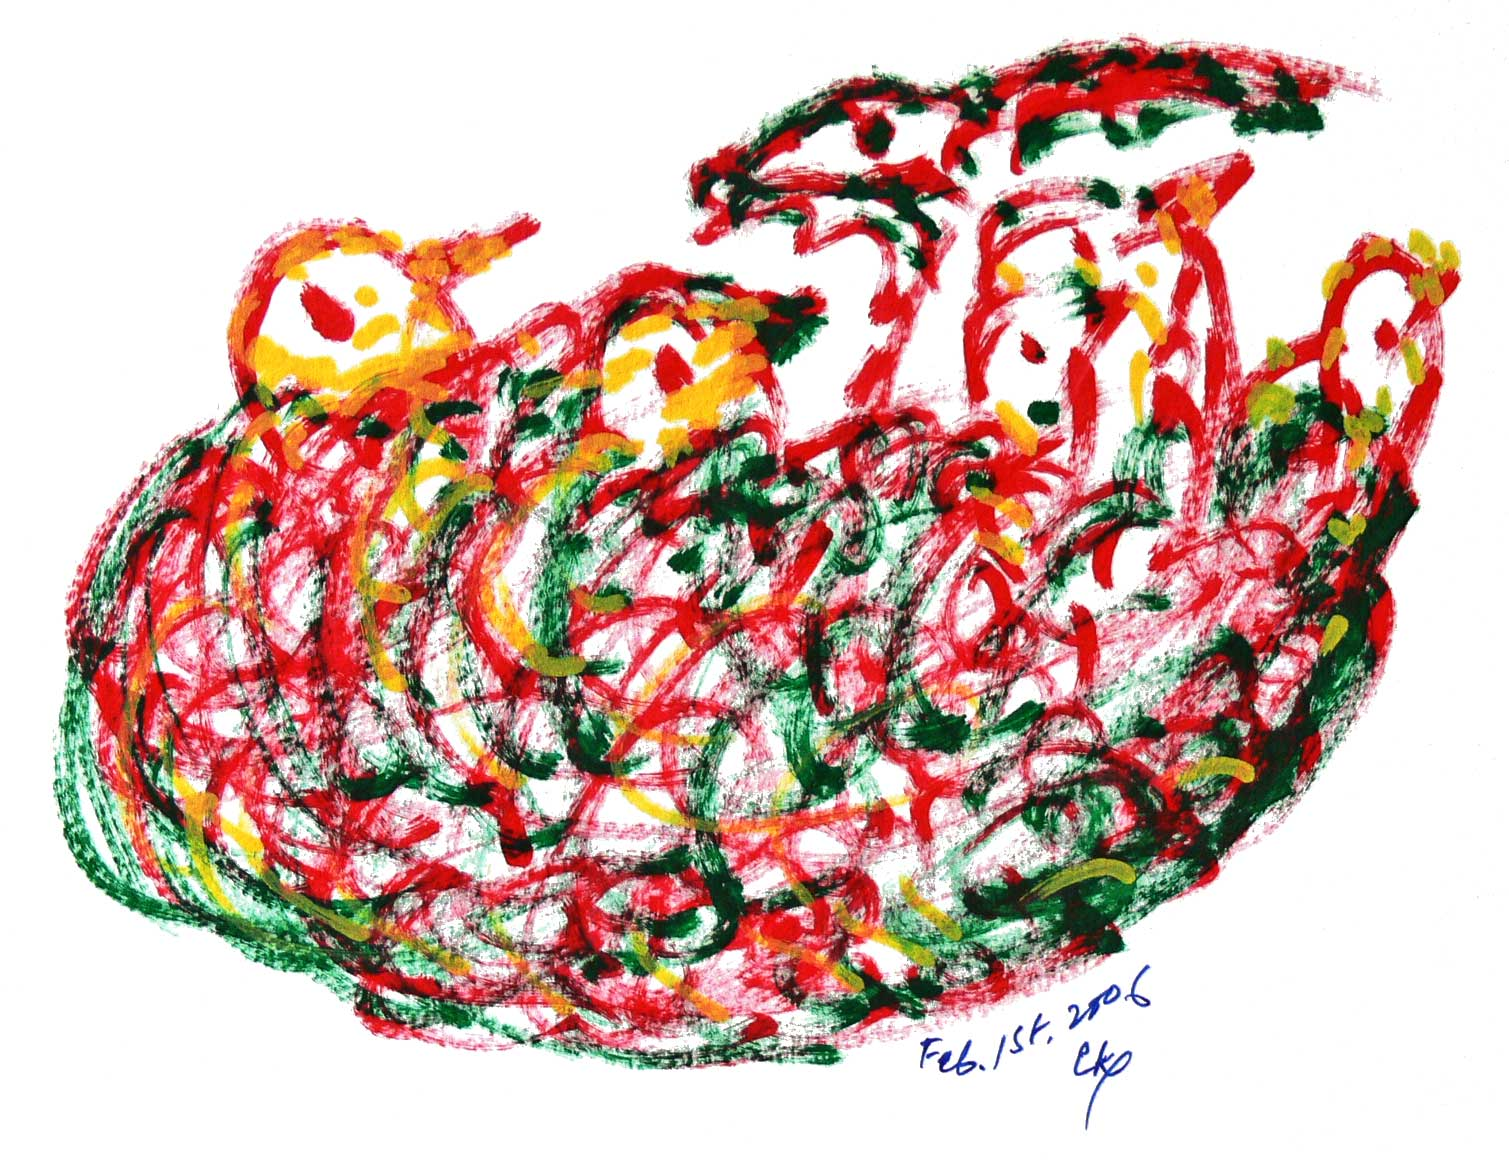 _Bird-Drawing-by-Sri-Chinmoy-1-2-2006-6